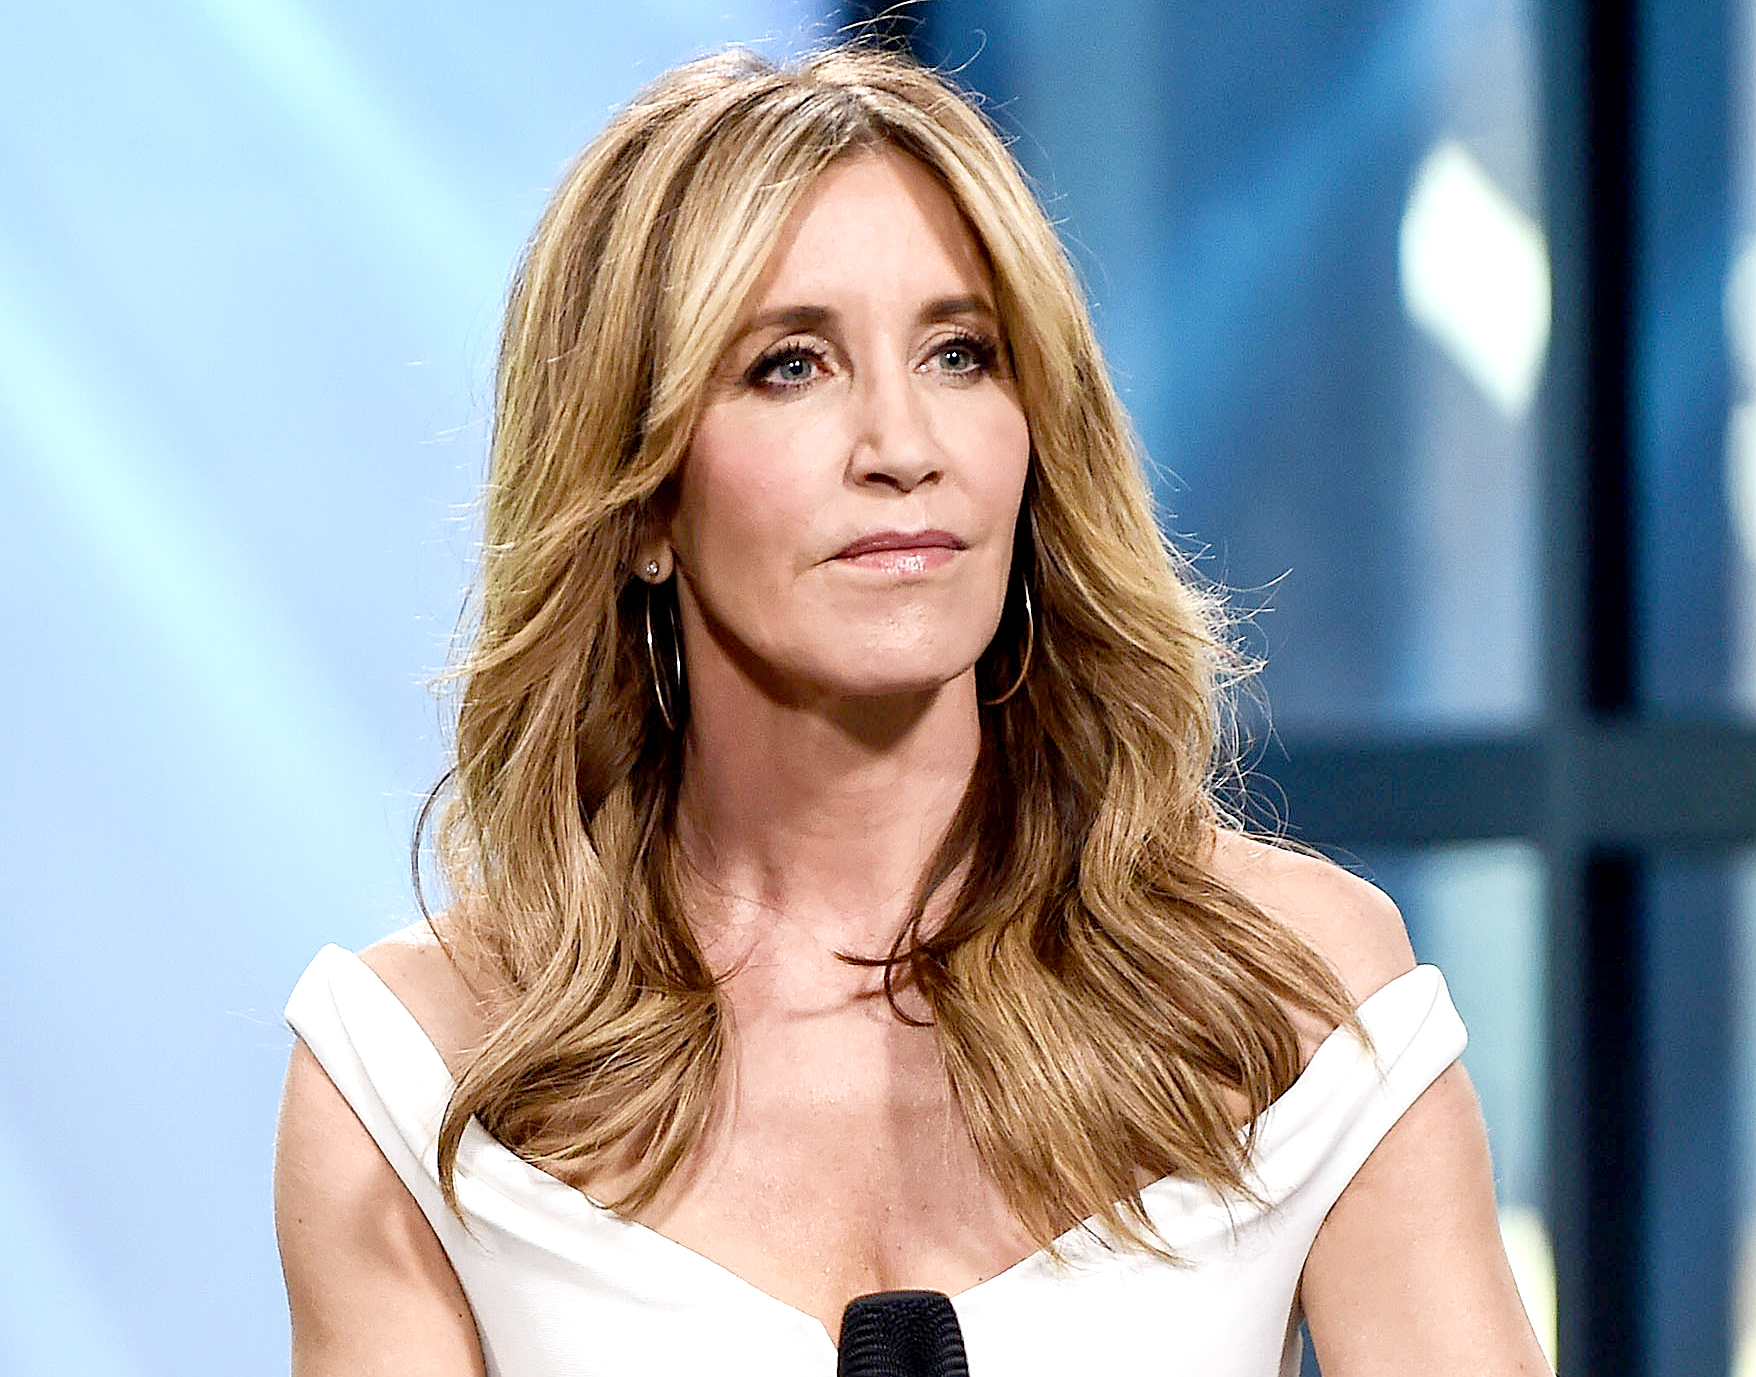 Felicity-Huffman-Arrested-at-Gunpoint-by-Several-FBI-Agents-Following-Scam